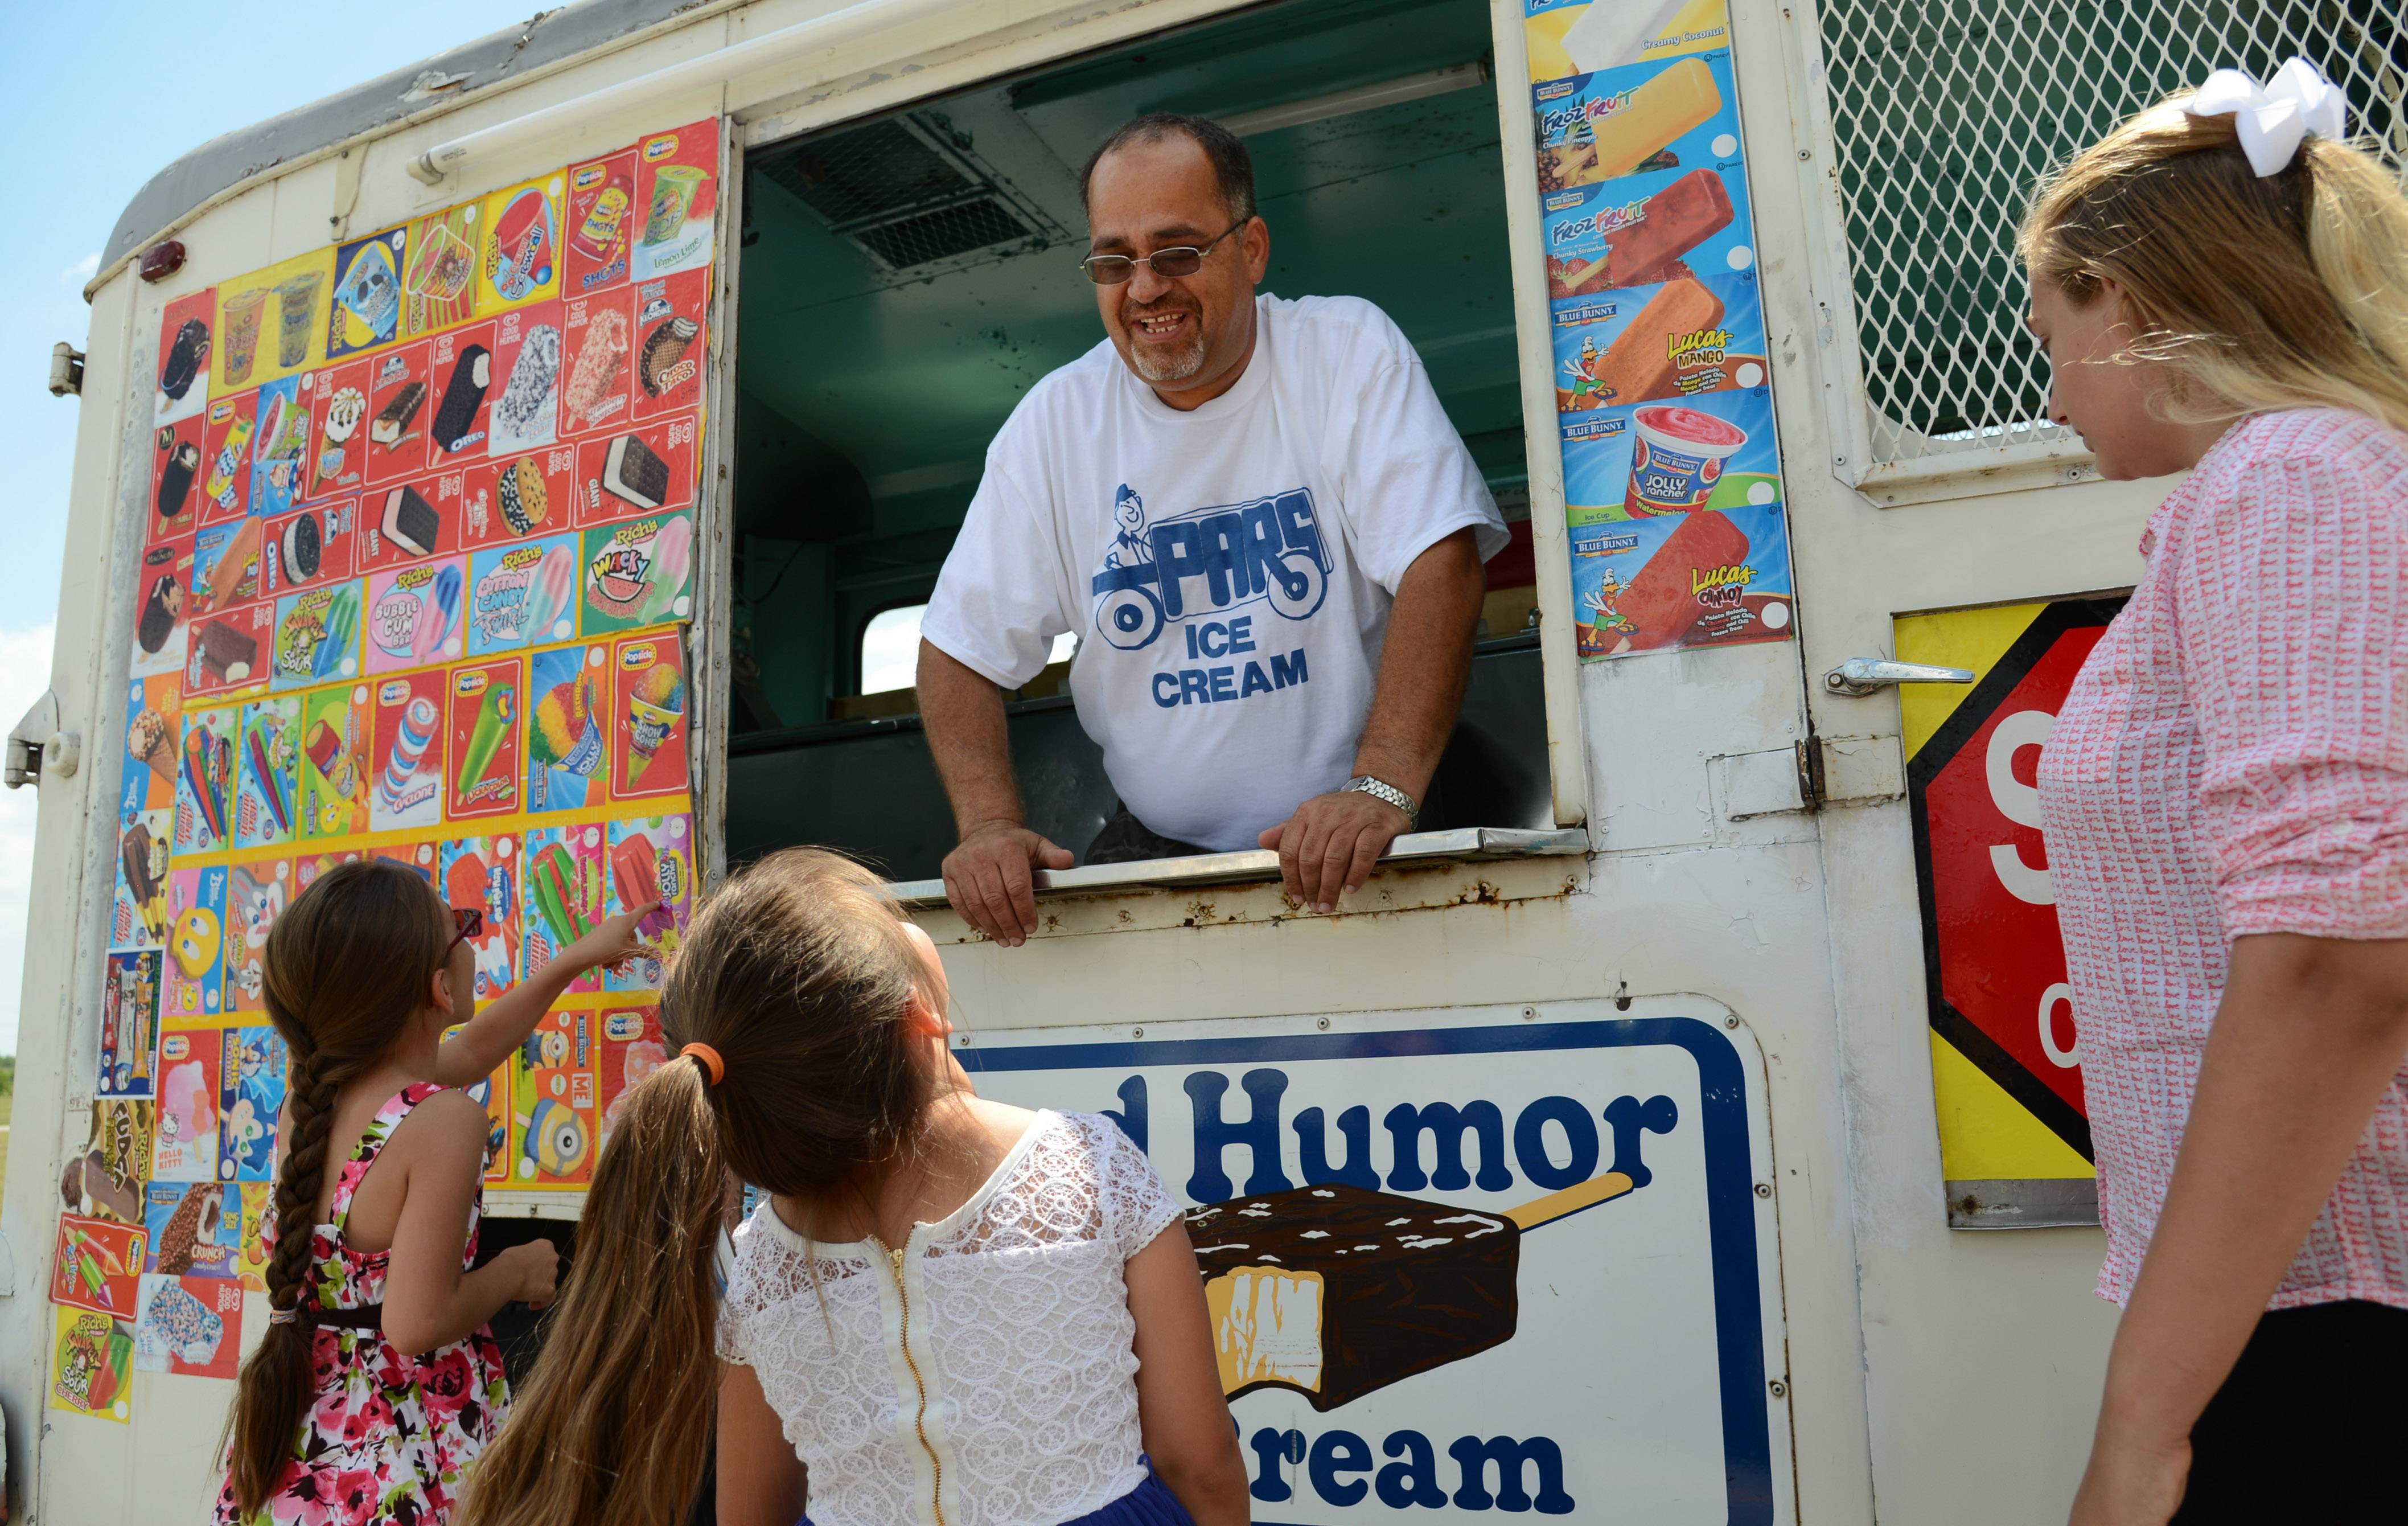 Ice cream trucks allowed in Mundelein after 53-year ban